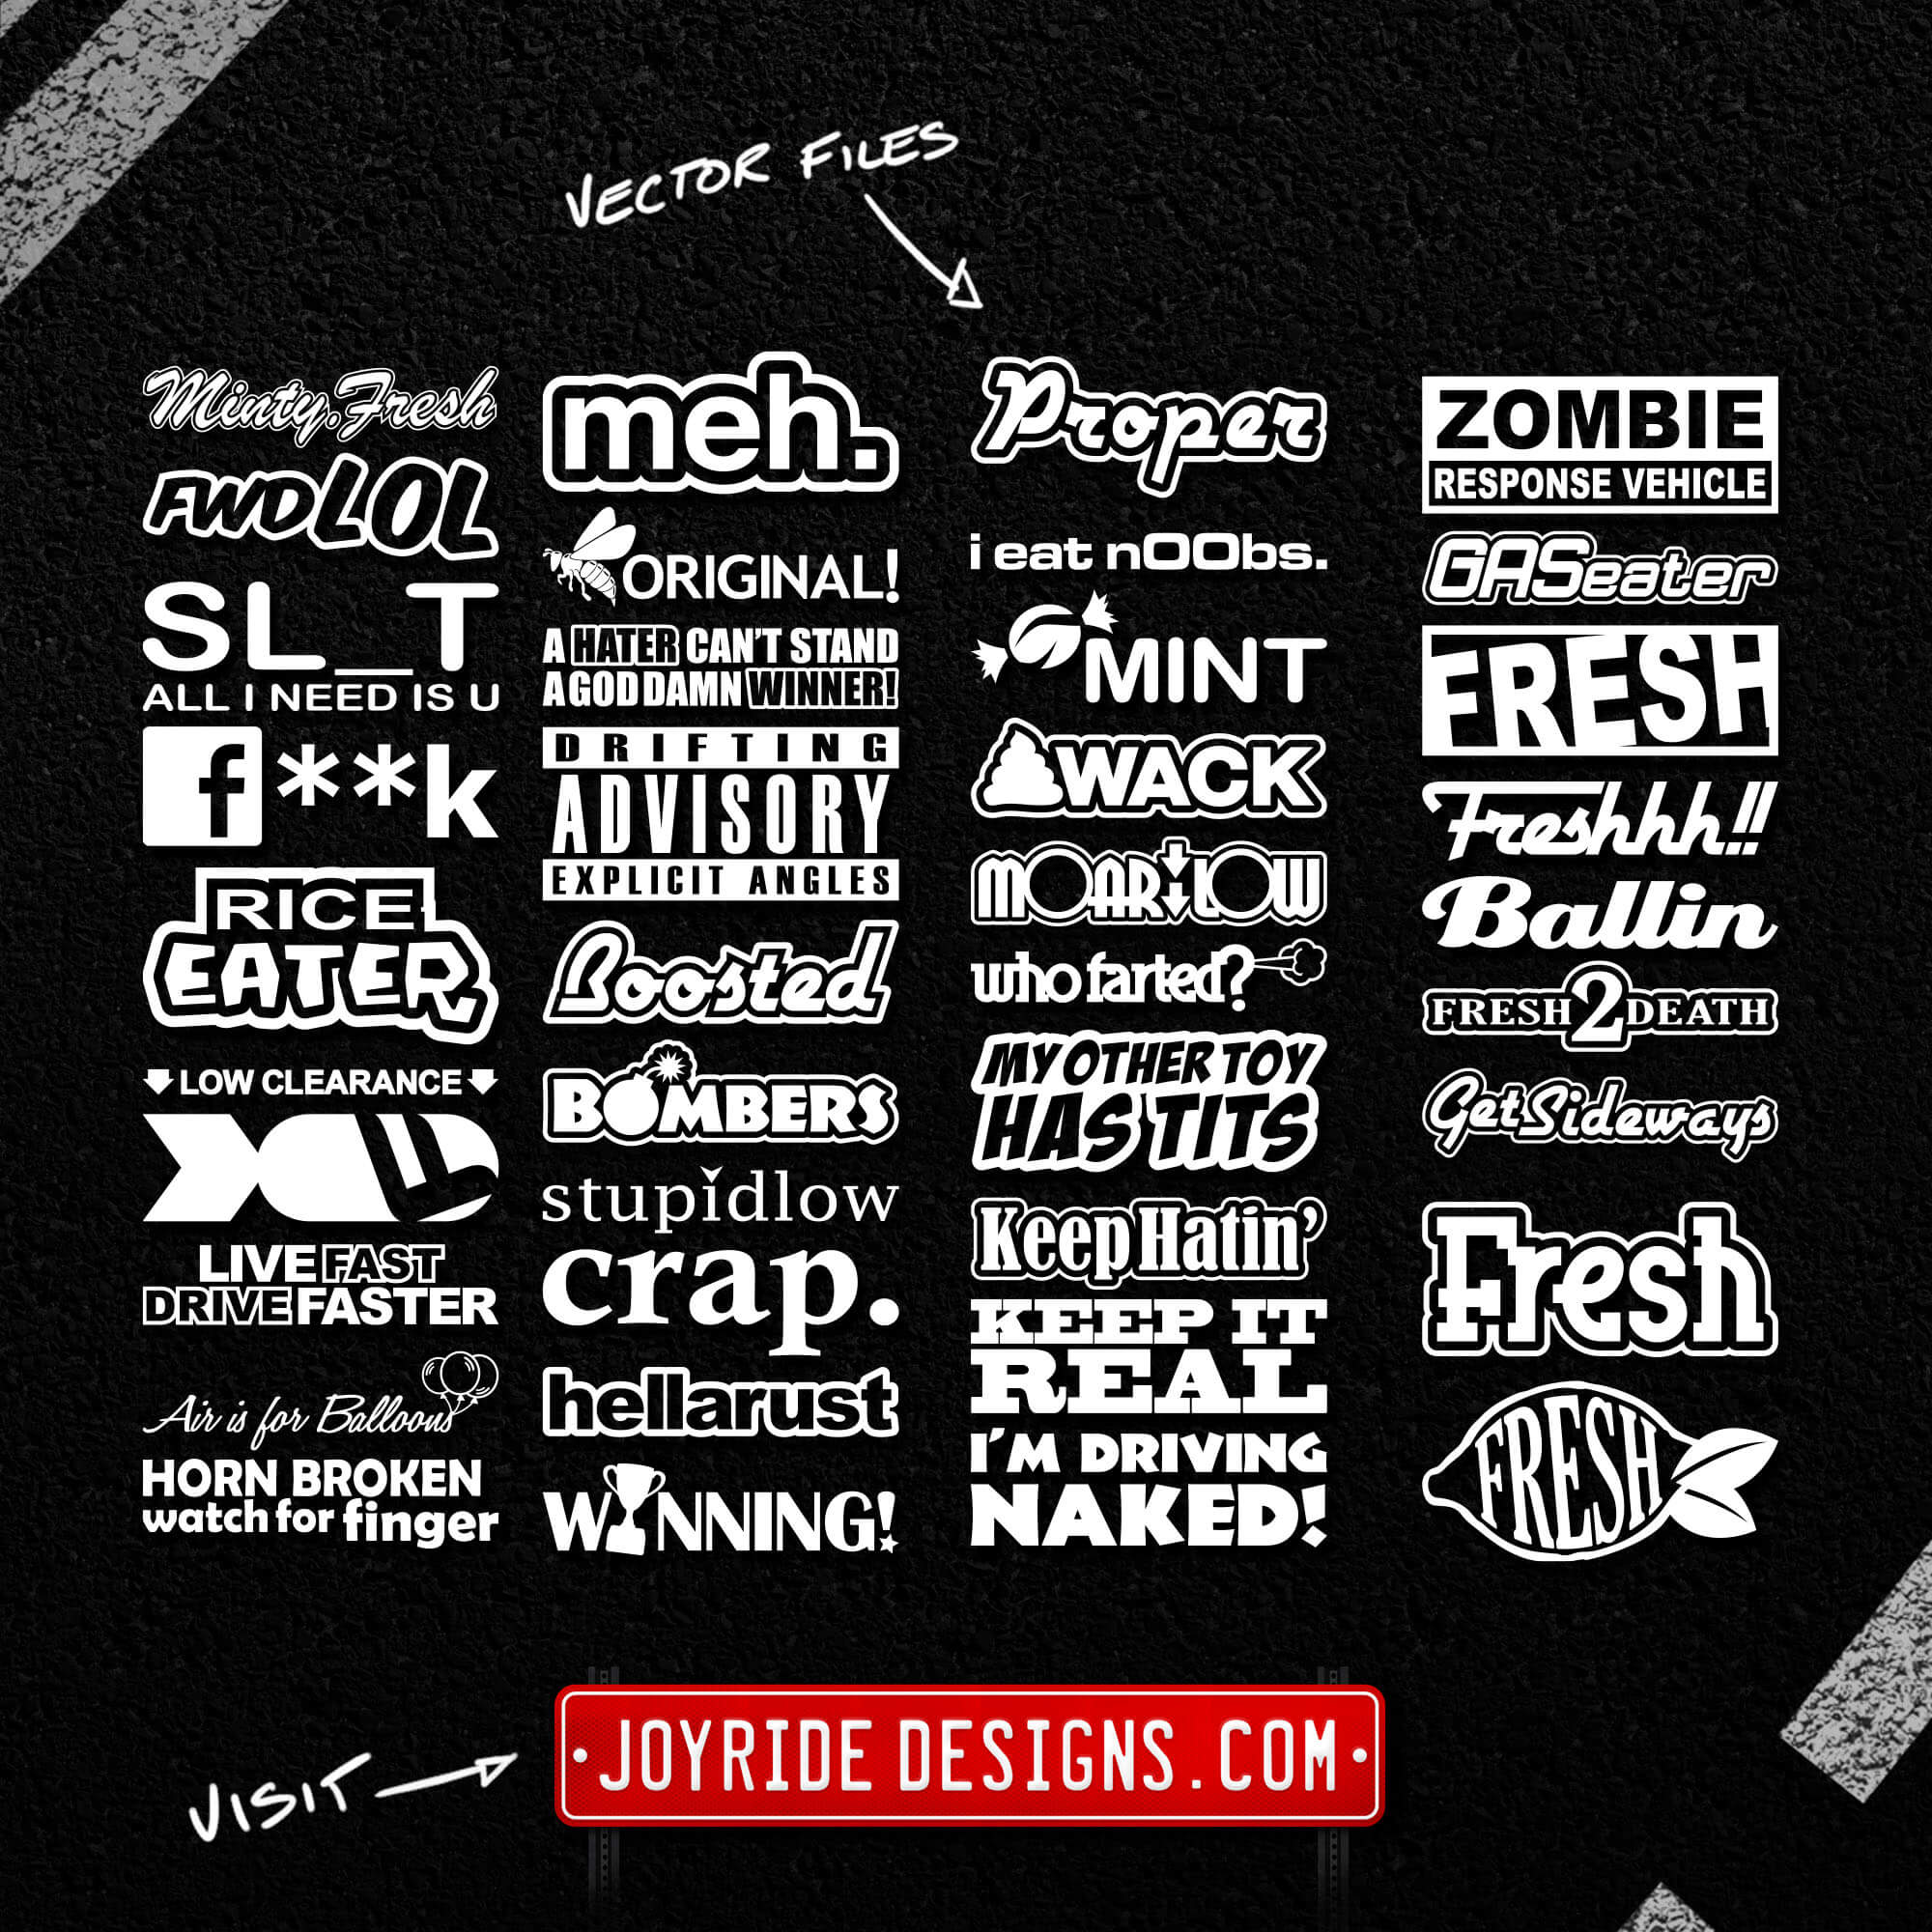 JOYRIDE DESIGNS VECTOR DECALS MEGA PACK 05